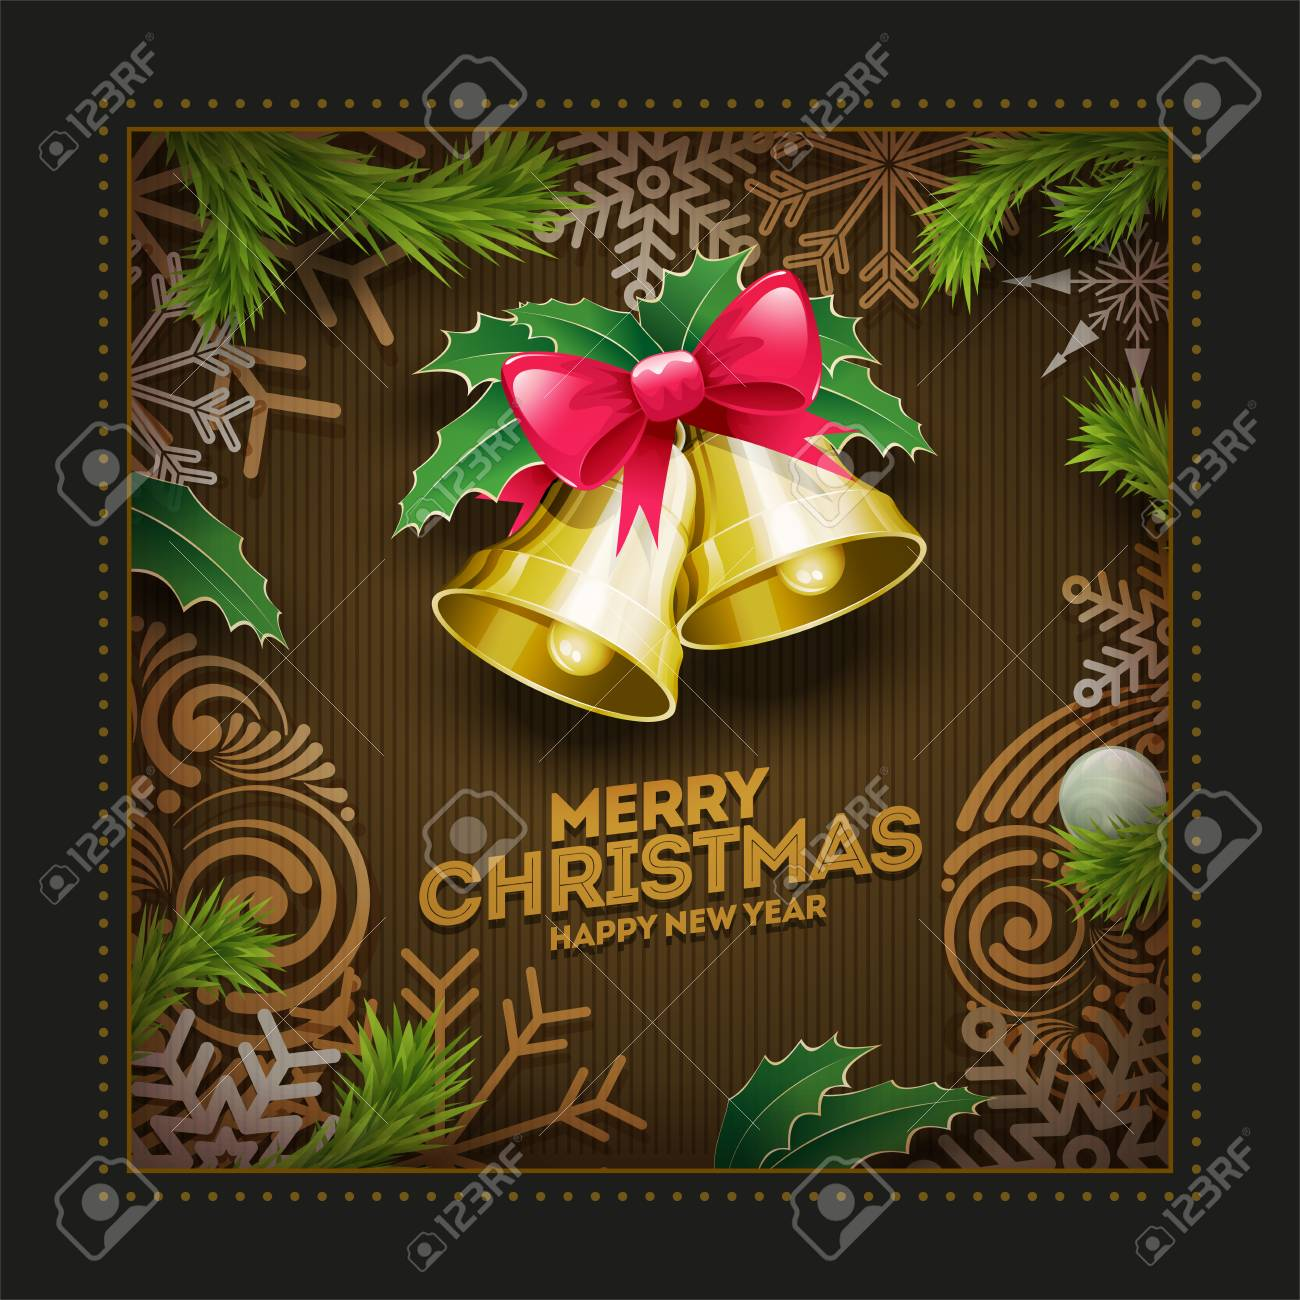 vector vector christmas and new year wishes on greeting card christmas related ornaments objects background elements are layered separately in vector